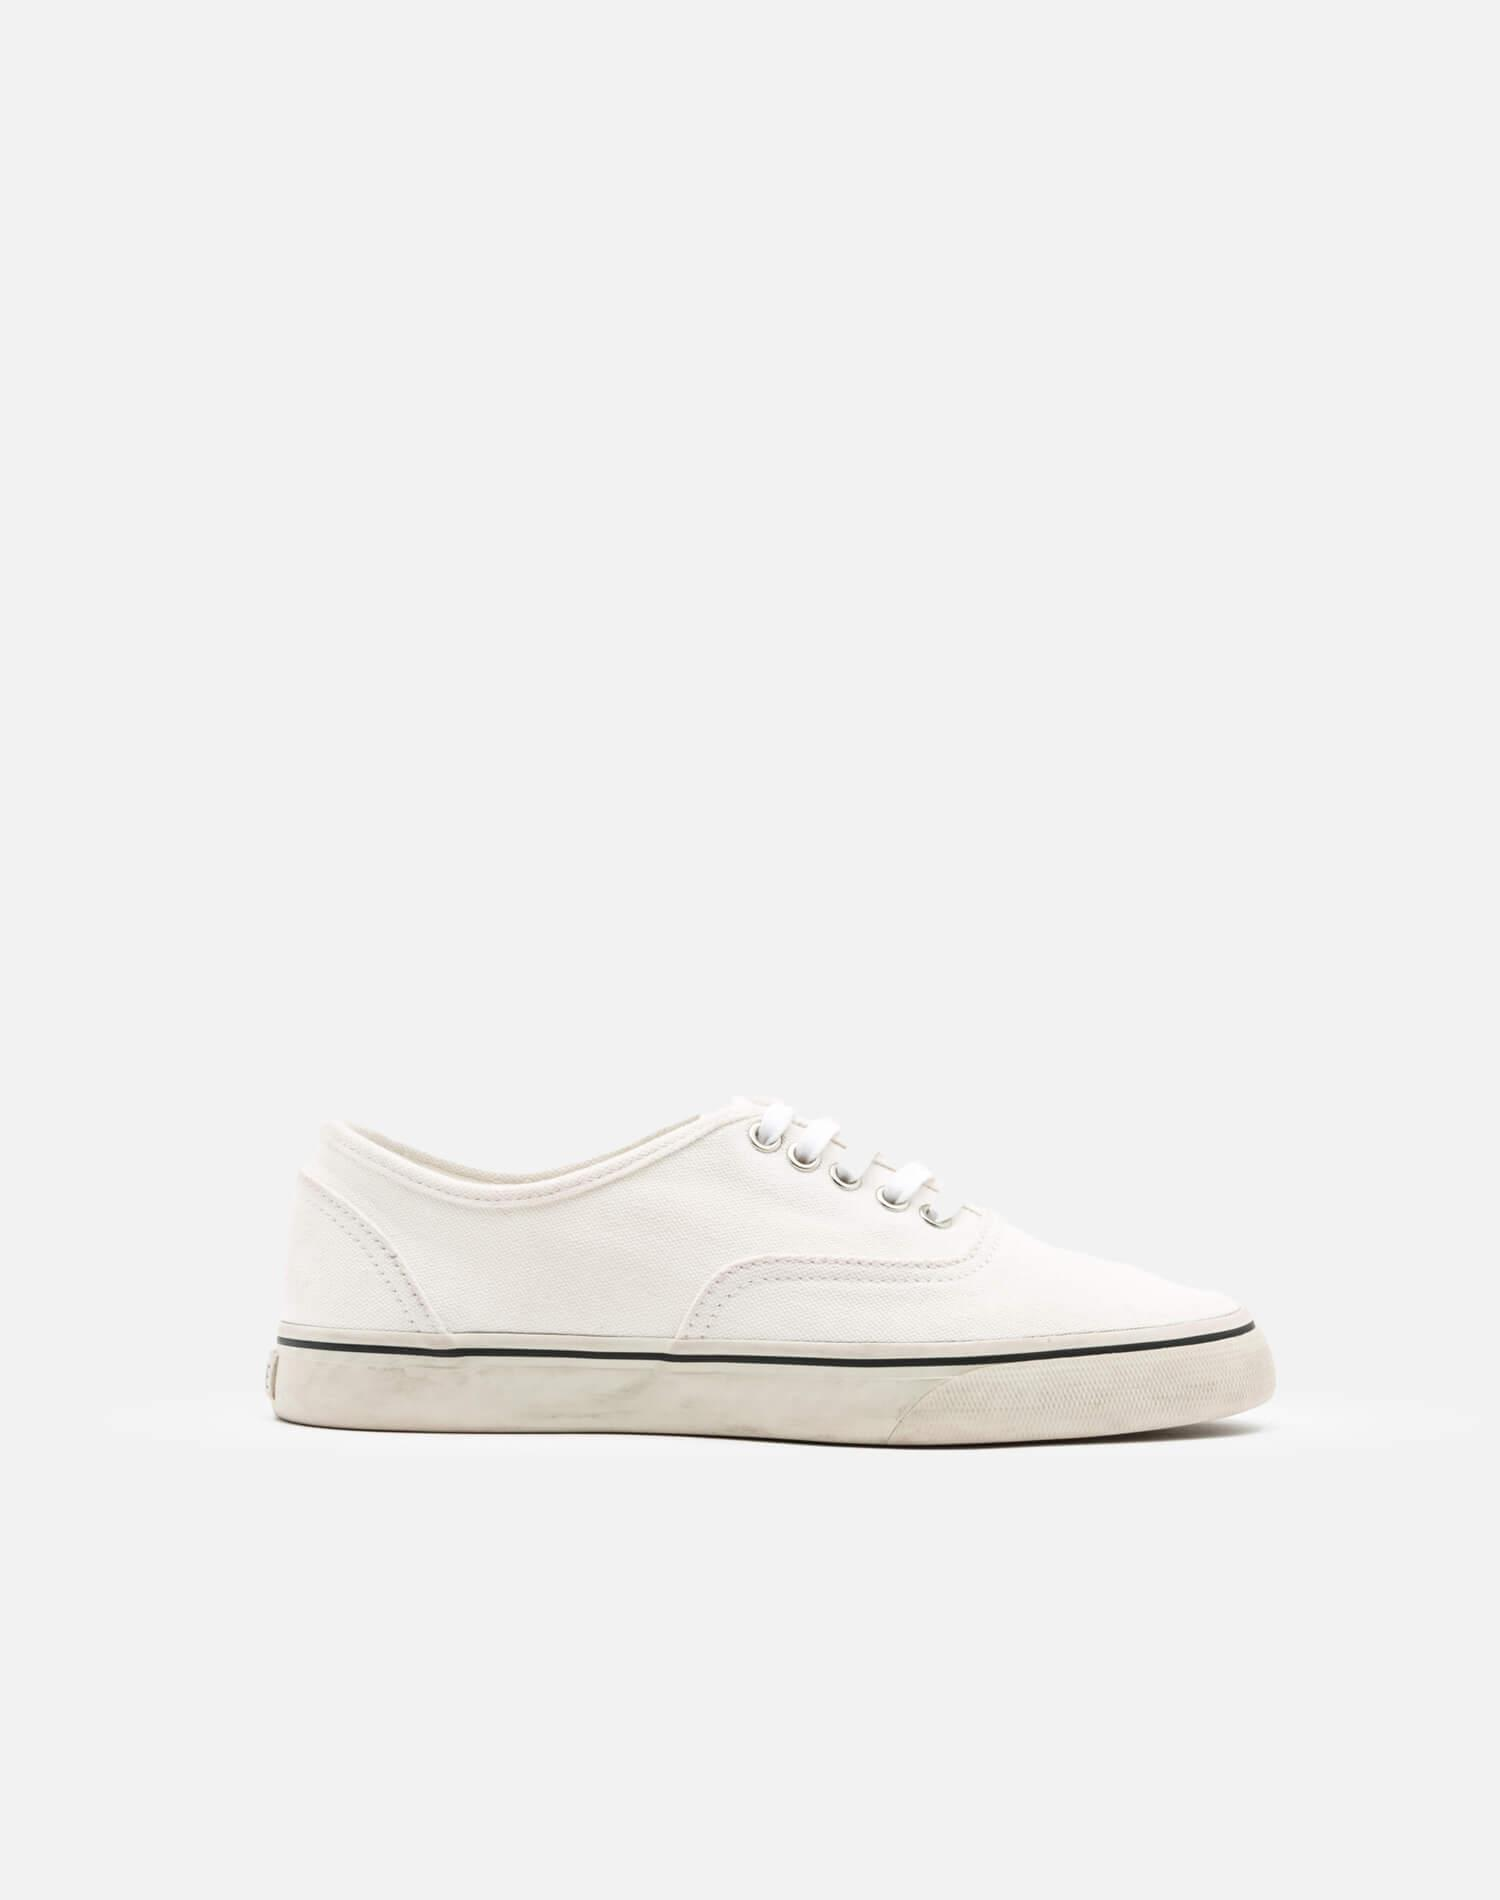 70s Low Top Skate - Washed Off White